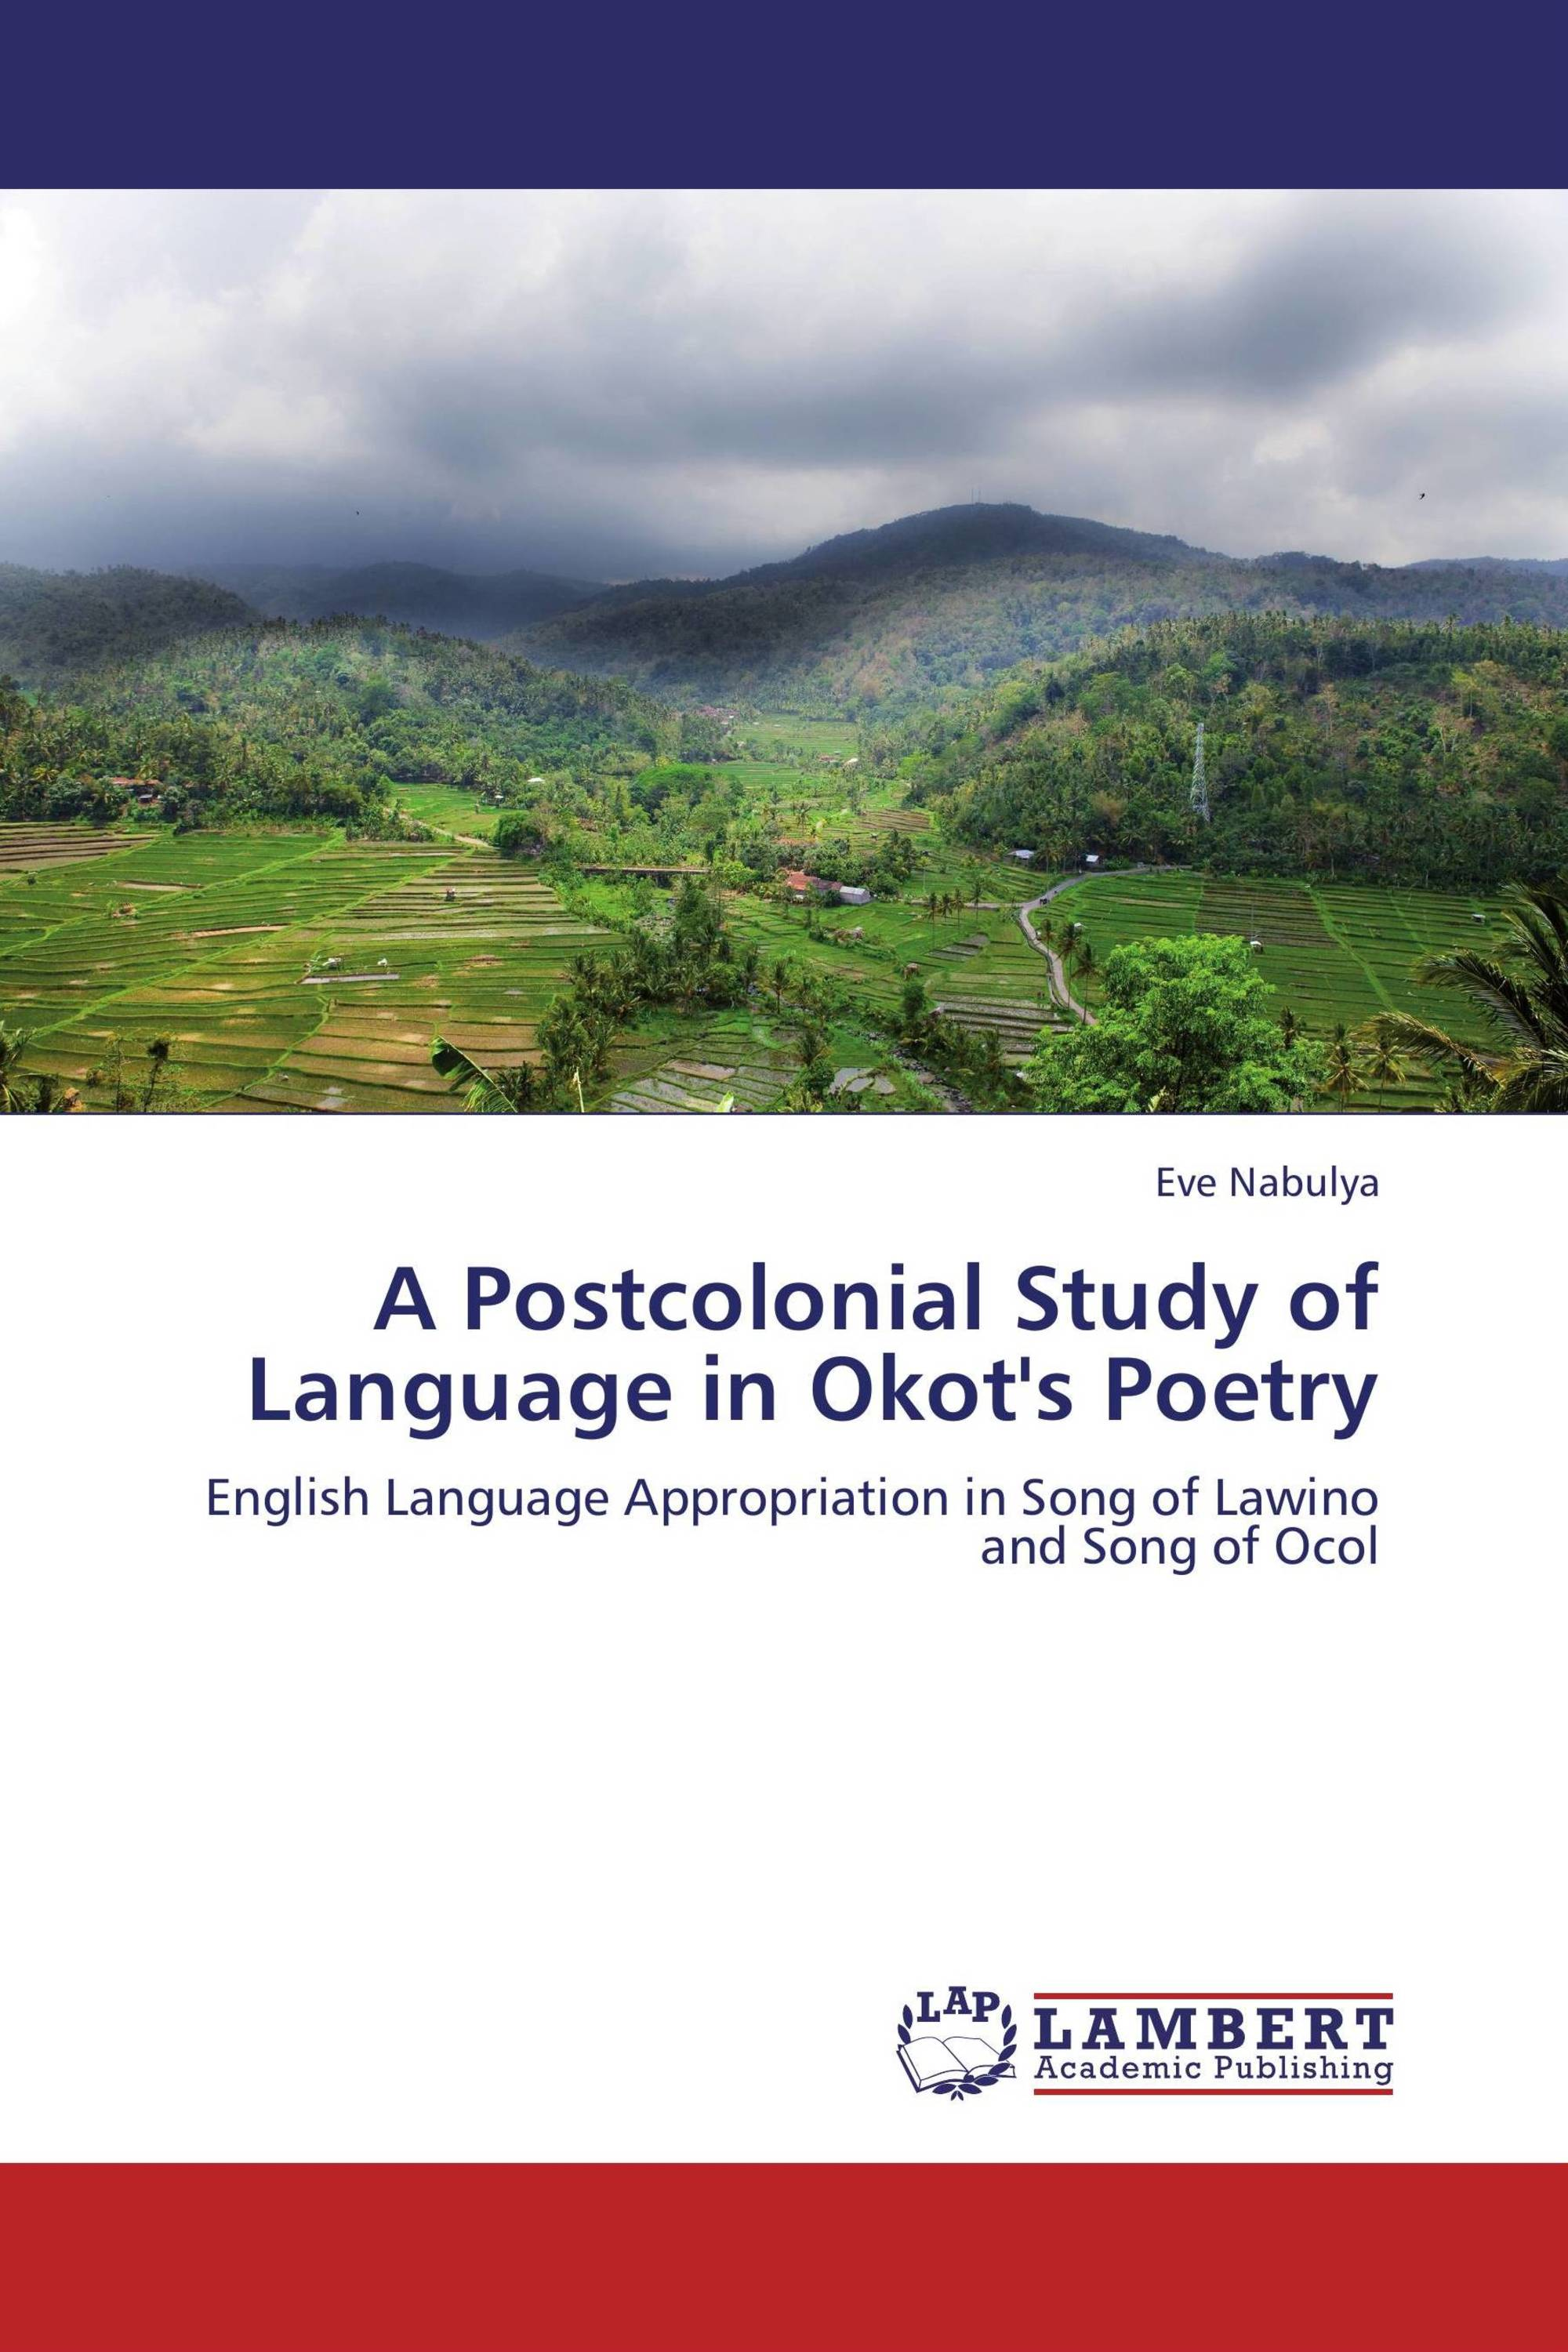 the similarities and differences between the poems song of lawino and song of ocol by okot p bitek The expected answer is a defensive delineation of the differences between the politically  okot p'bitek's song of lawino  poems he draws the.